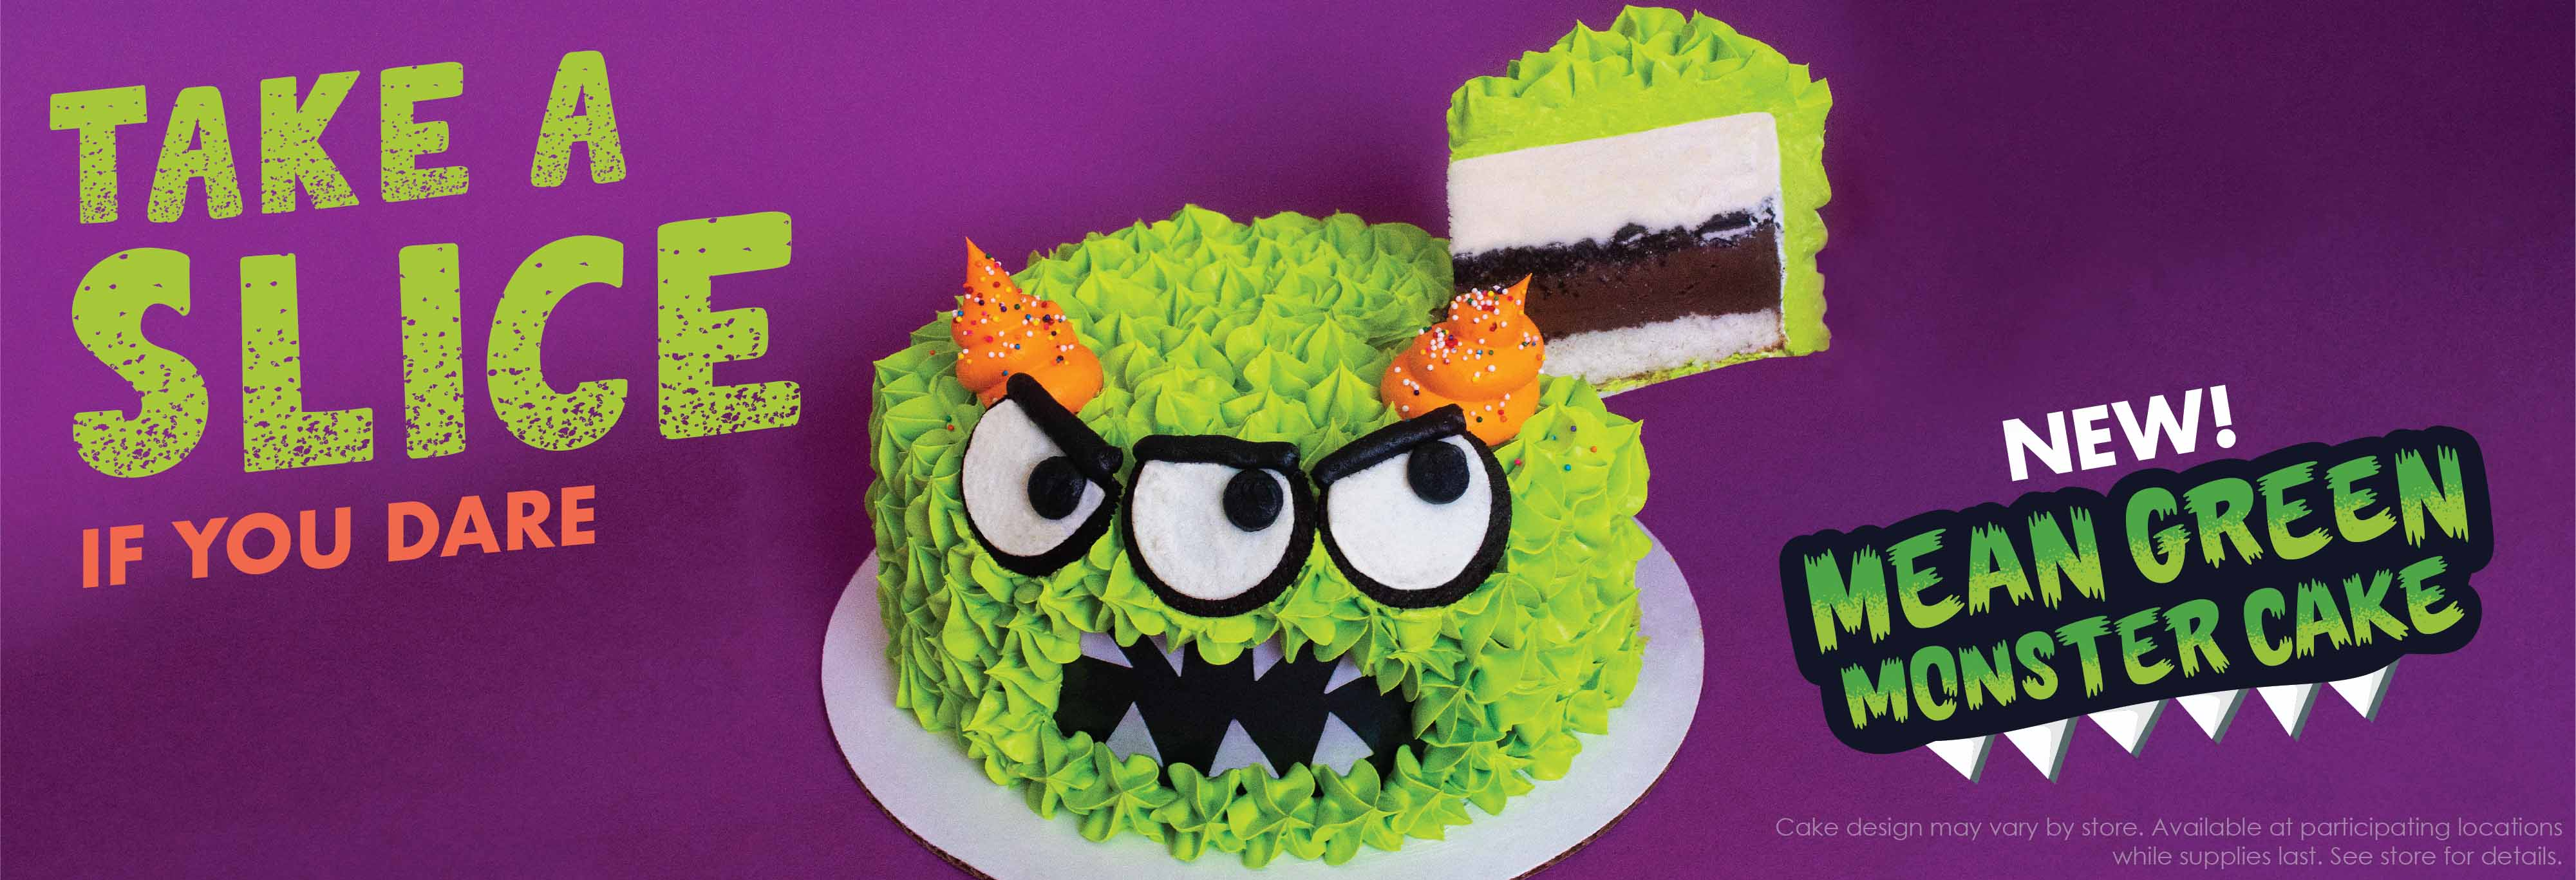 An image of Menchie's Mean Green Monster Frozen Yogurt Cake. Try one of our new Monster Cakes, if you dare! Pick up one of our Mean Green Monster, Mellow Yellow Monster or Big Eyed Blue Monster for your October party today!